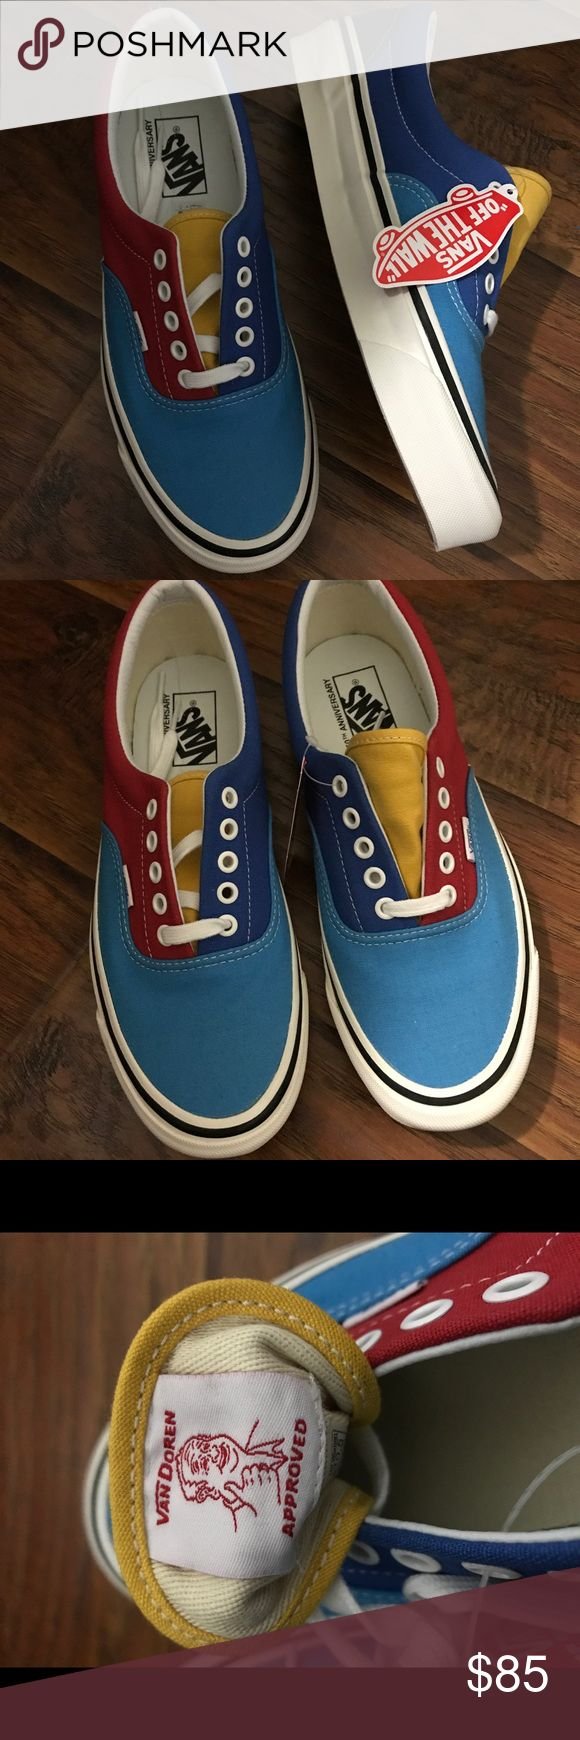 50th anniversary vans Vans Vans Vans Vans Vans Shoes Sneakers